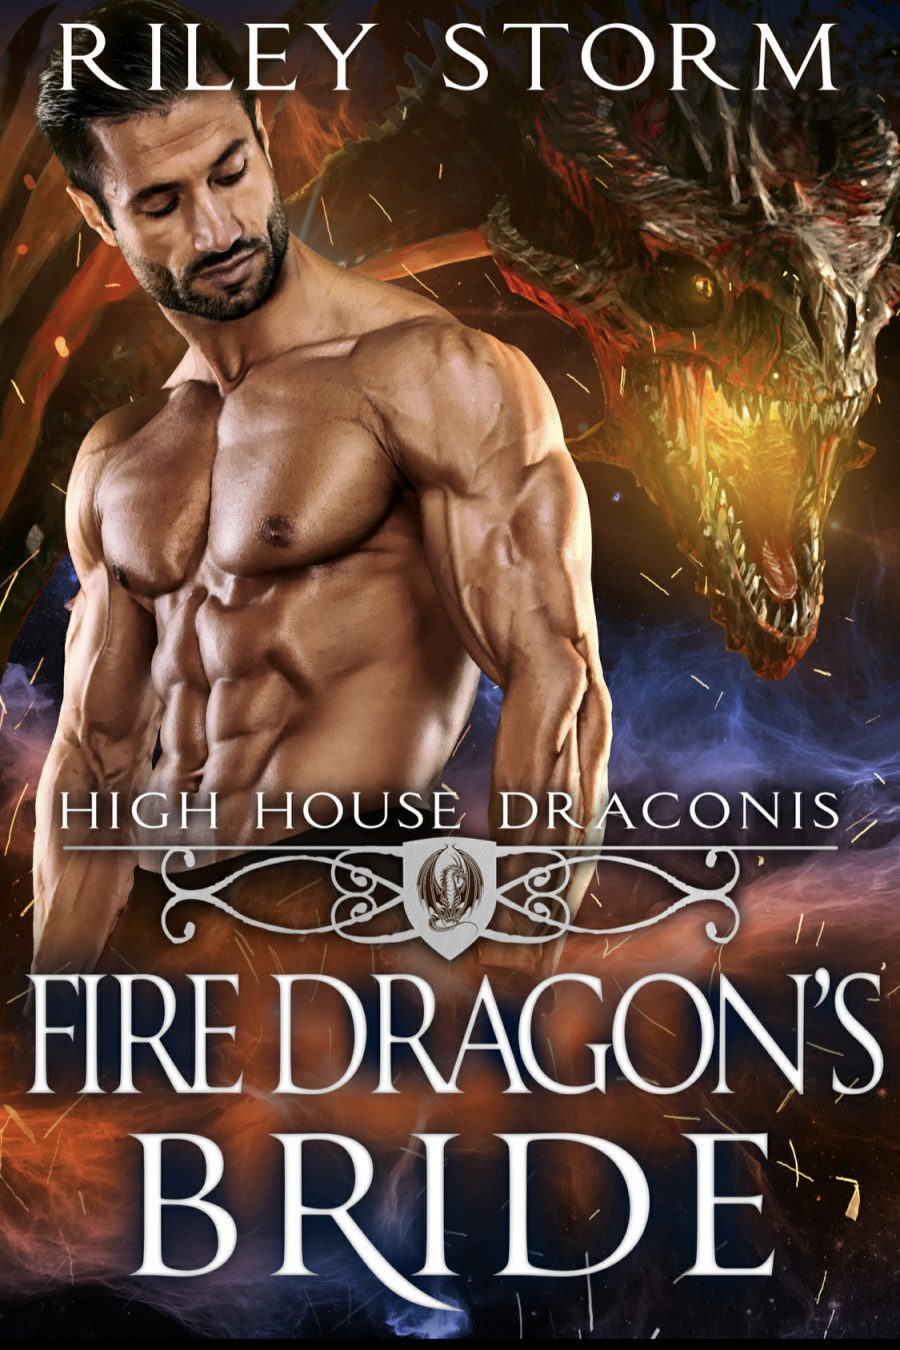 Fire Dragon's Bride (High House of Draconis) by Riley Storm - A Book Review #BookReview #PNR #ShifterRomance #HEA #Dragons